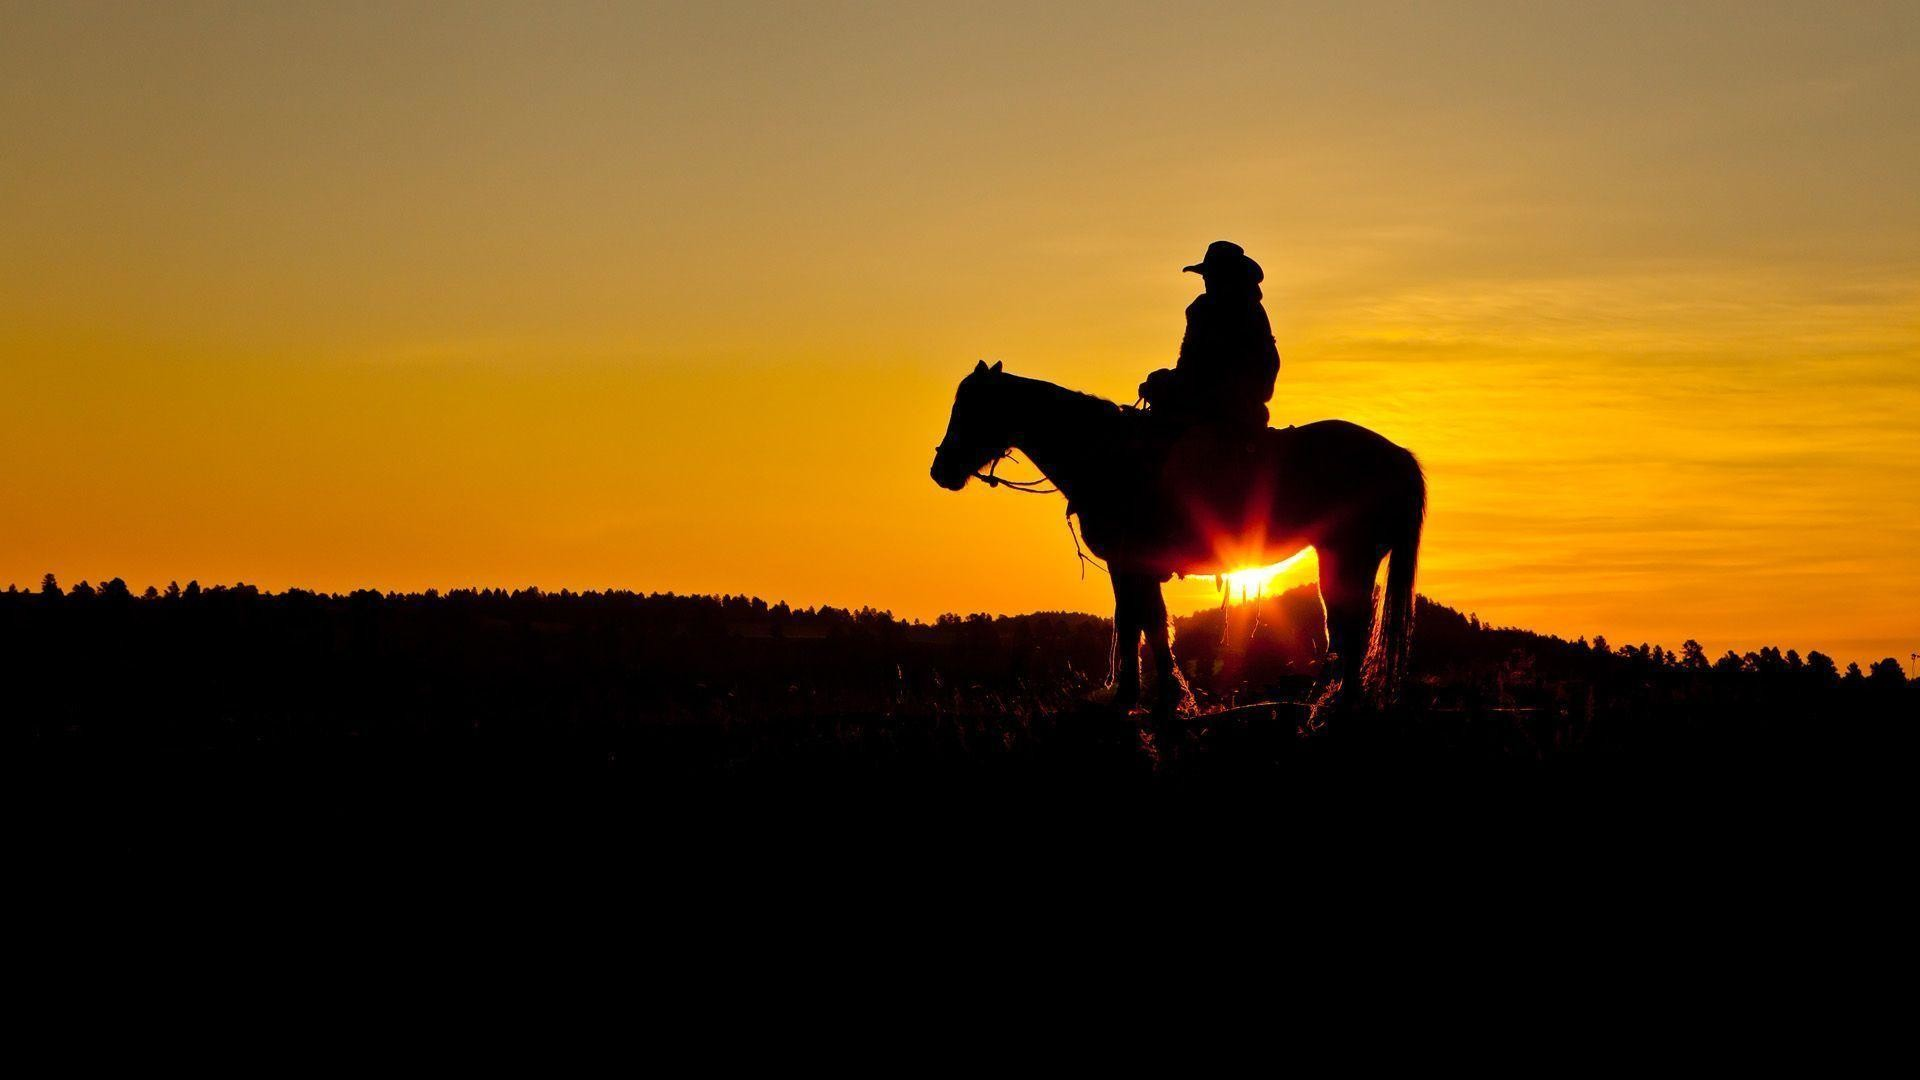 1920x1080 cowboy wallpaper – 1920×1080 High Definition Wallpaper, Background .